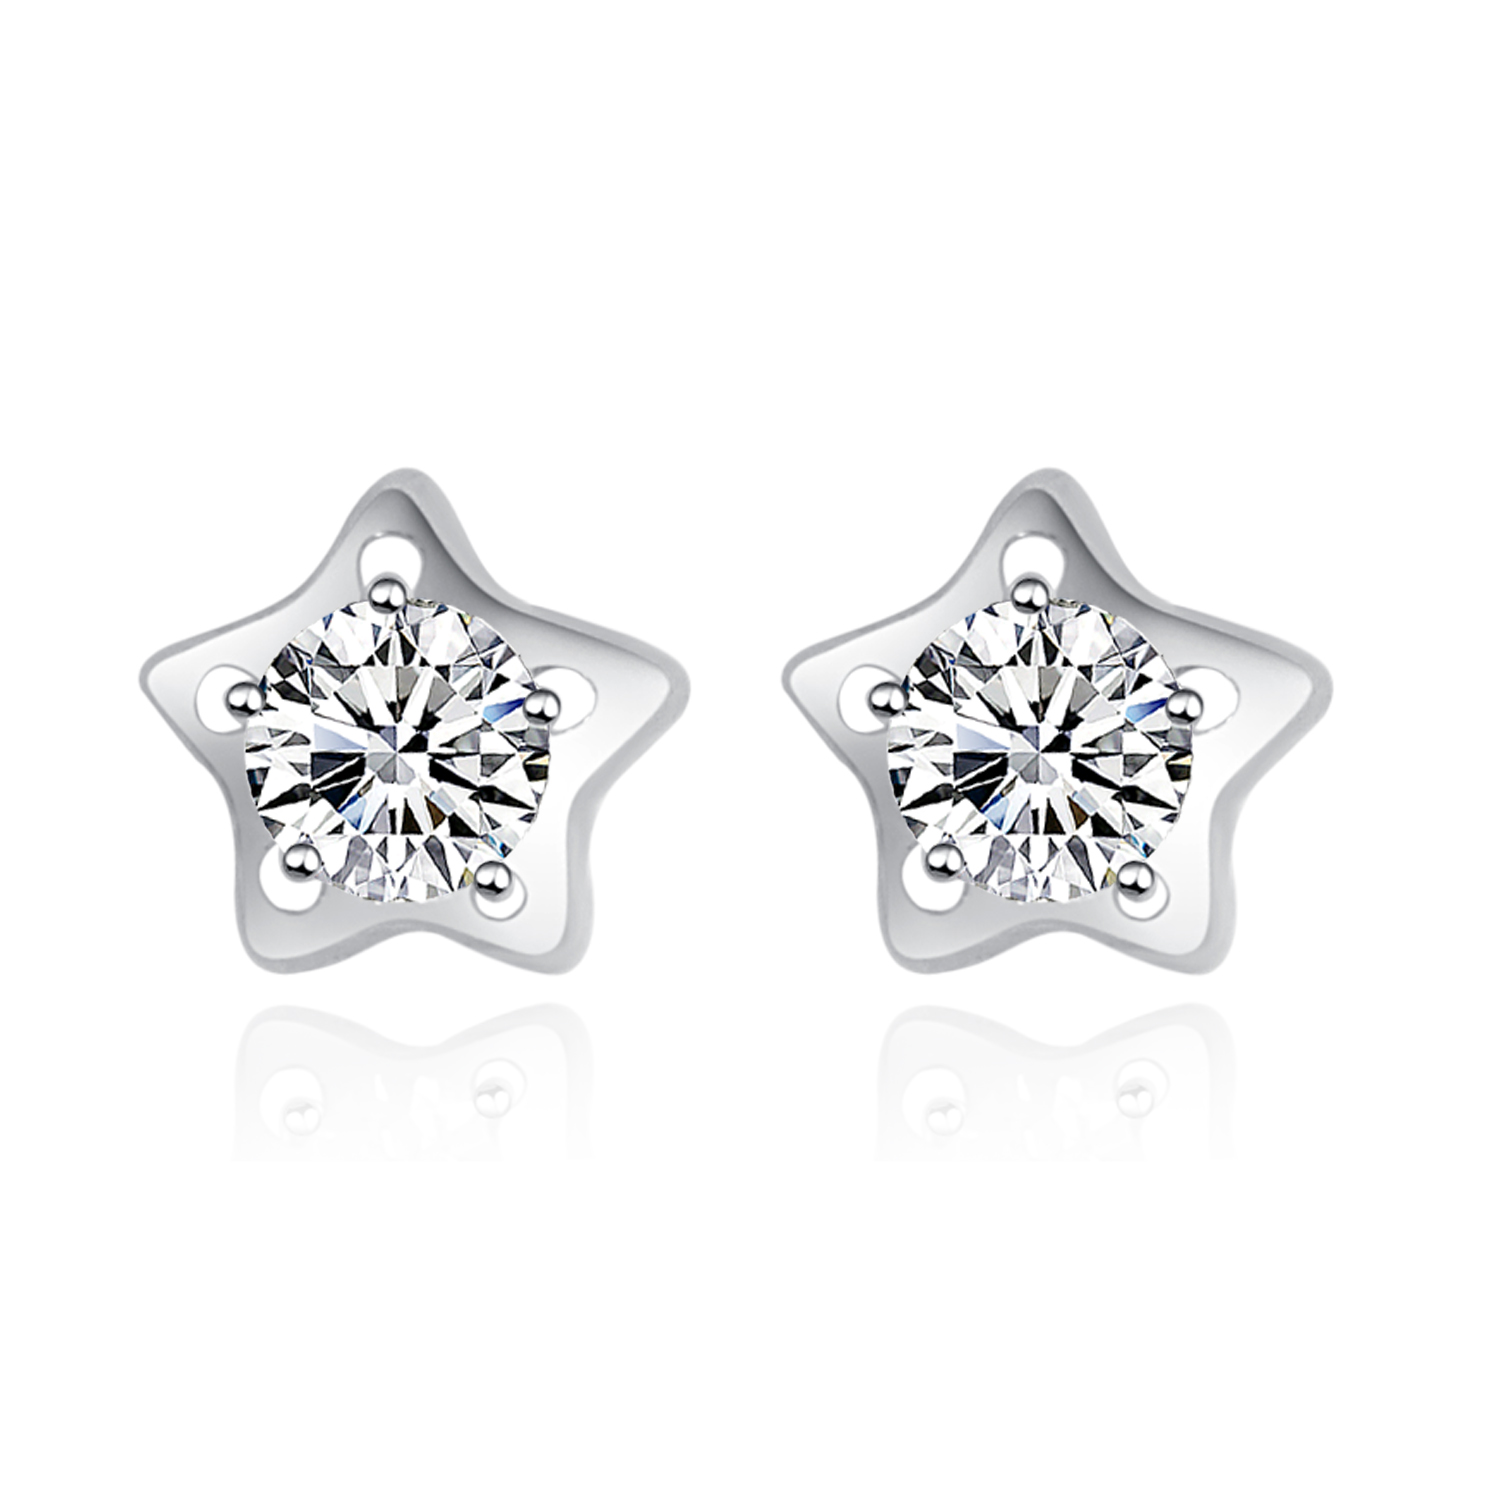 jewellery paul earrings alt cz wright handmade stud silver small diamond